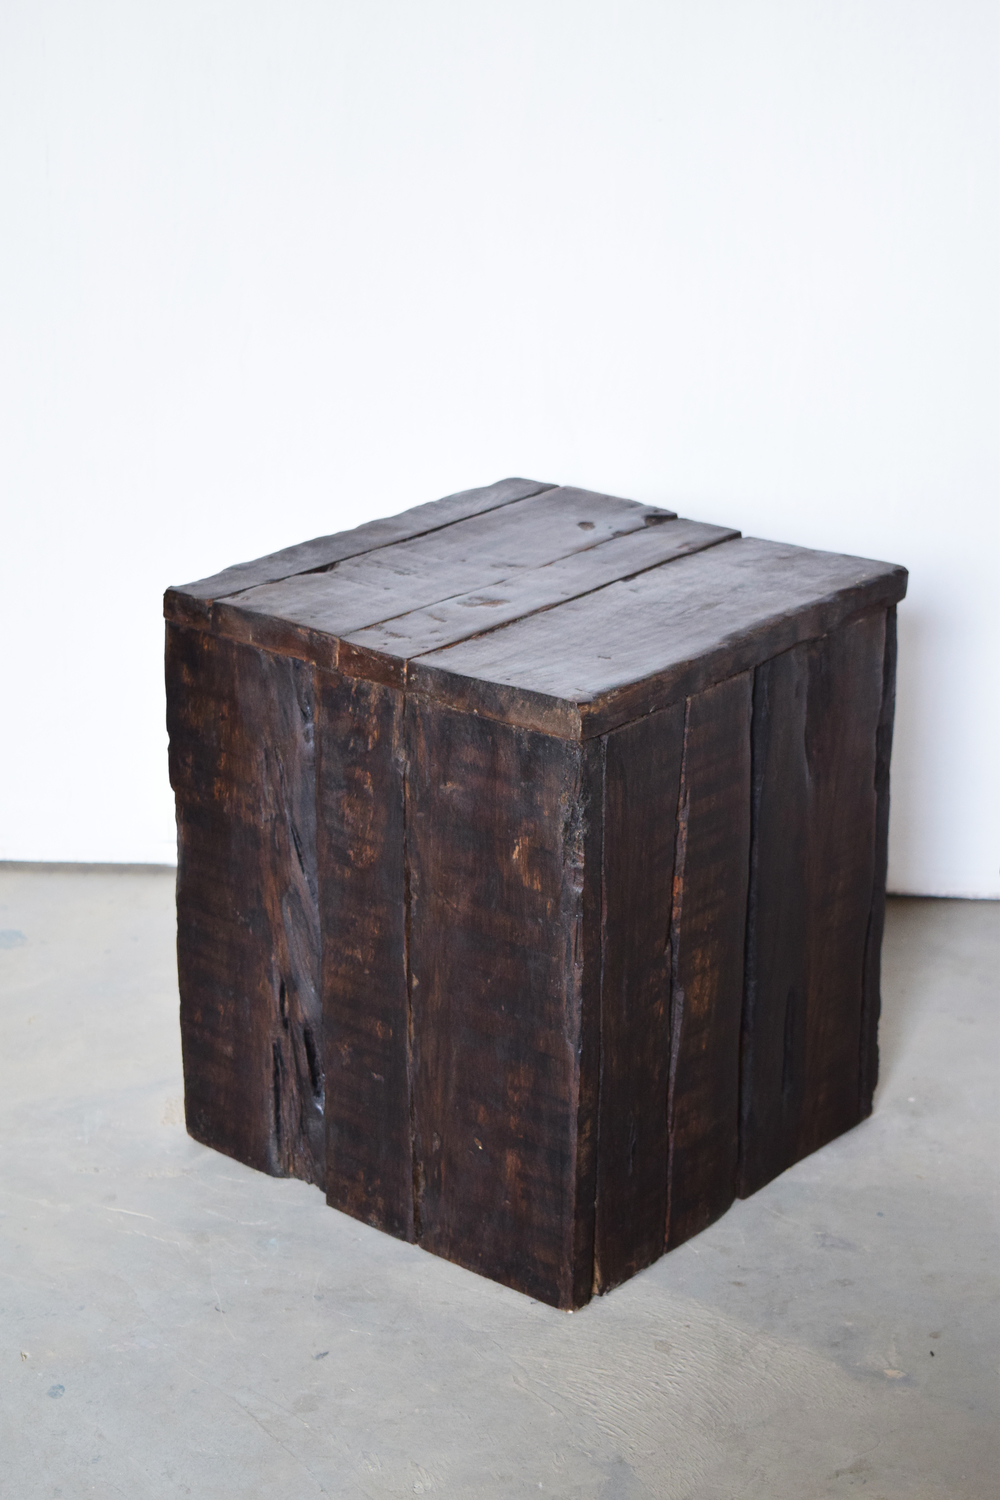 Sleeper cube stool